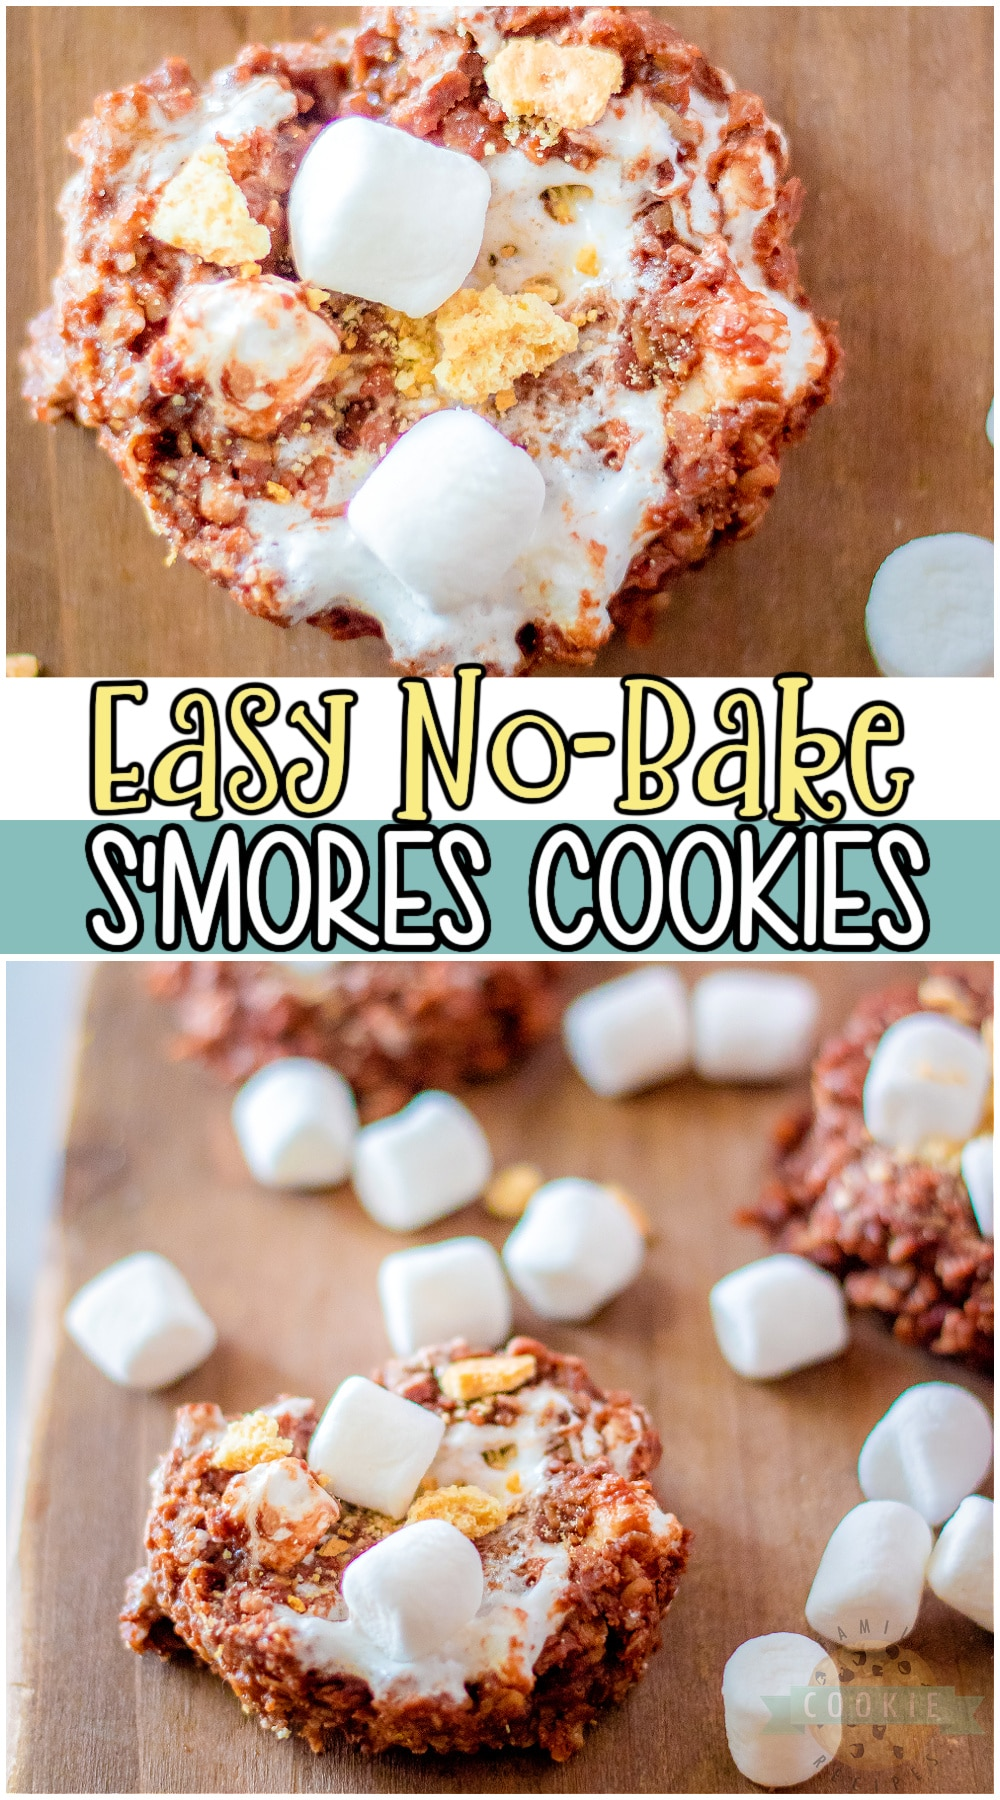 No-Bake S'mores Cookies made with oats, peanut butter, marshmallows & graham crackers! Simple recipe for s'mores fans that's a fun twist on classic no-bake cookies. #nobake #cookies #smores #chocolate #oats #easyrecipe from FAMILY COOKIE RECIPES via @familycookierecipes